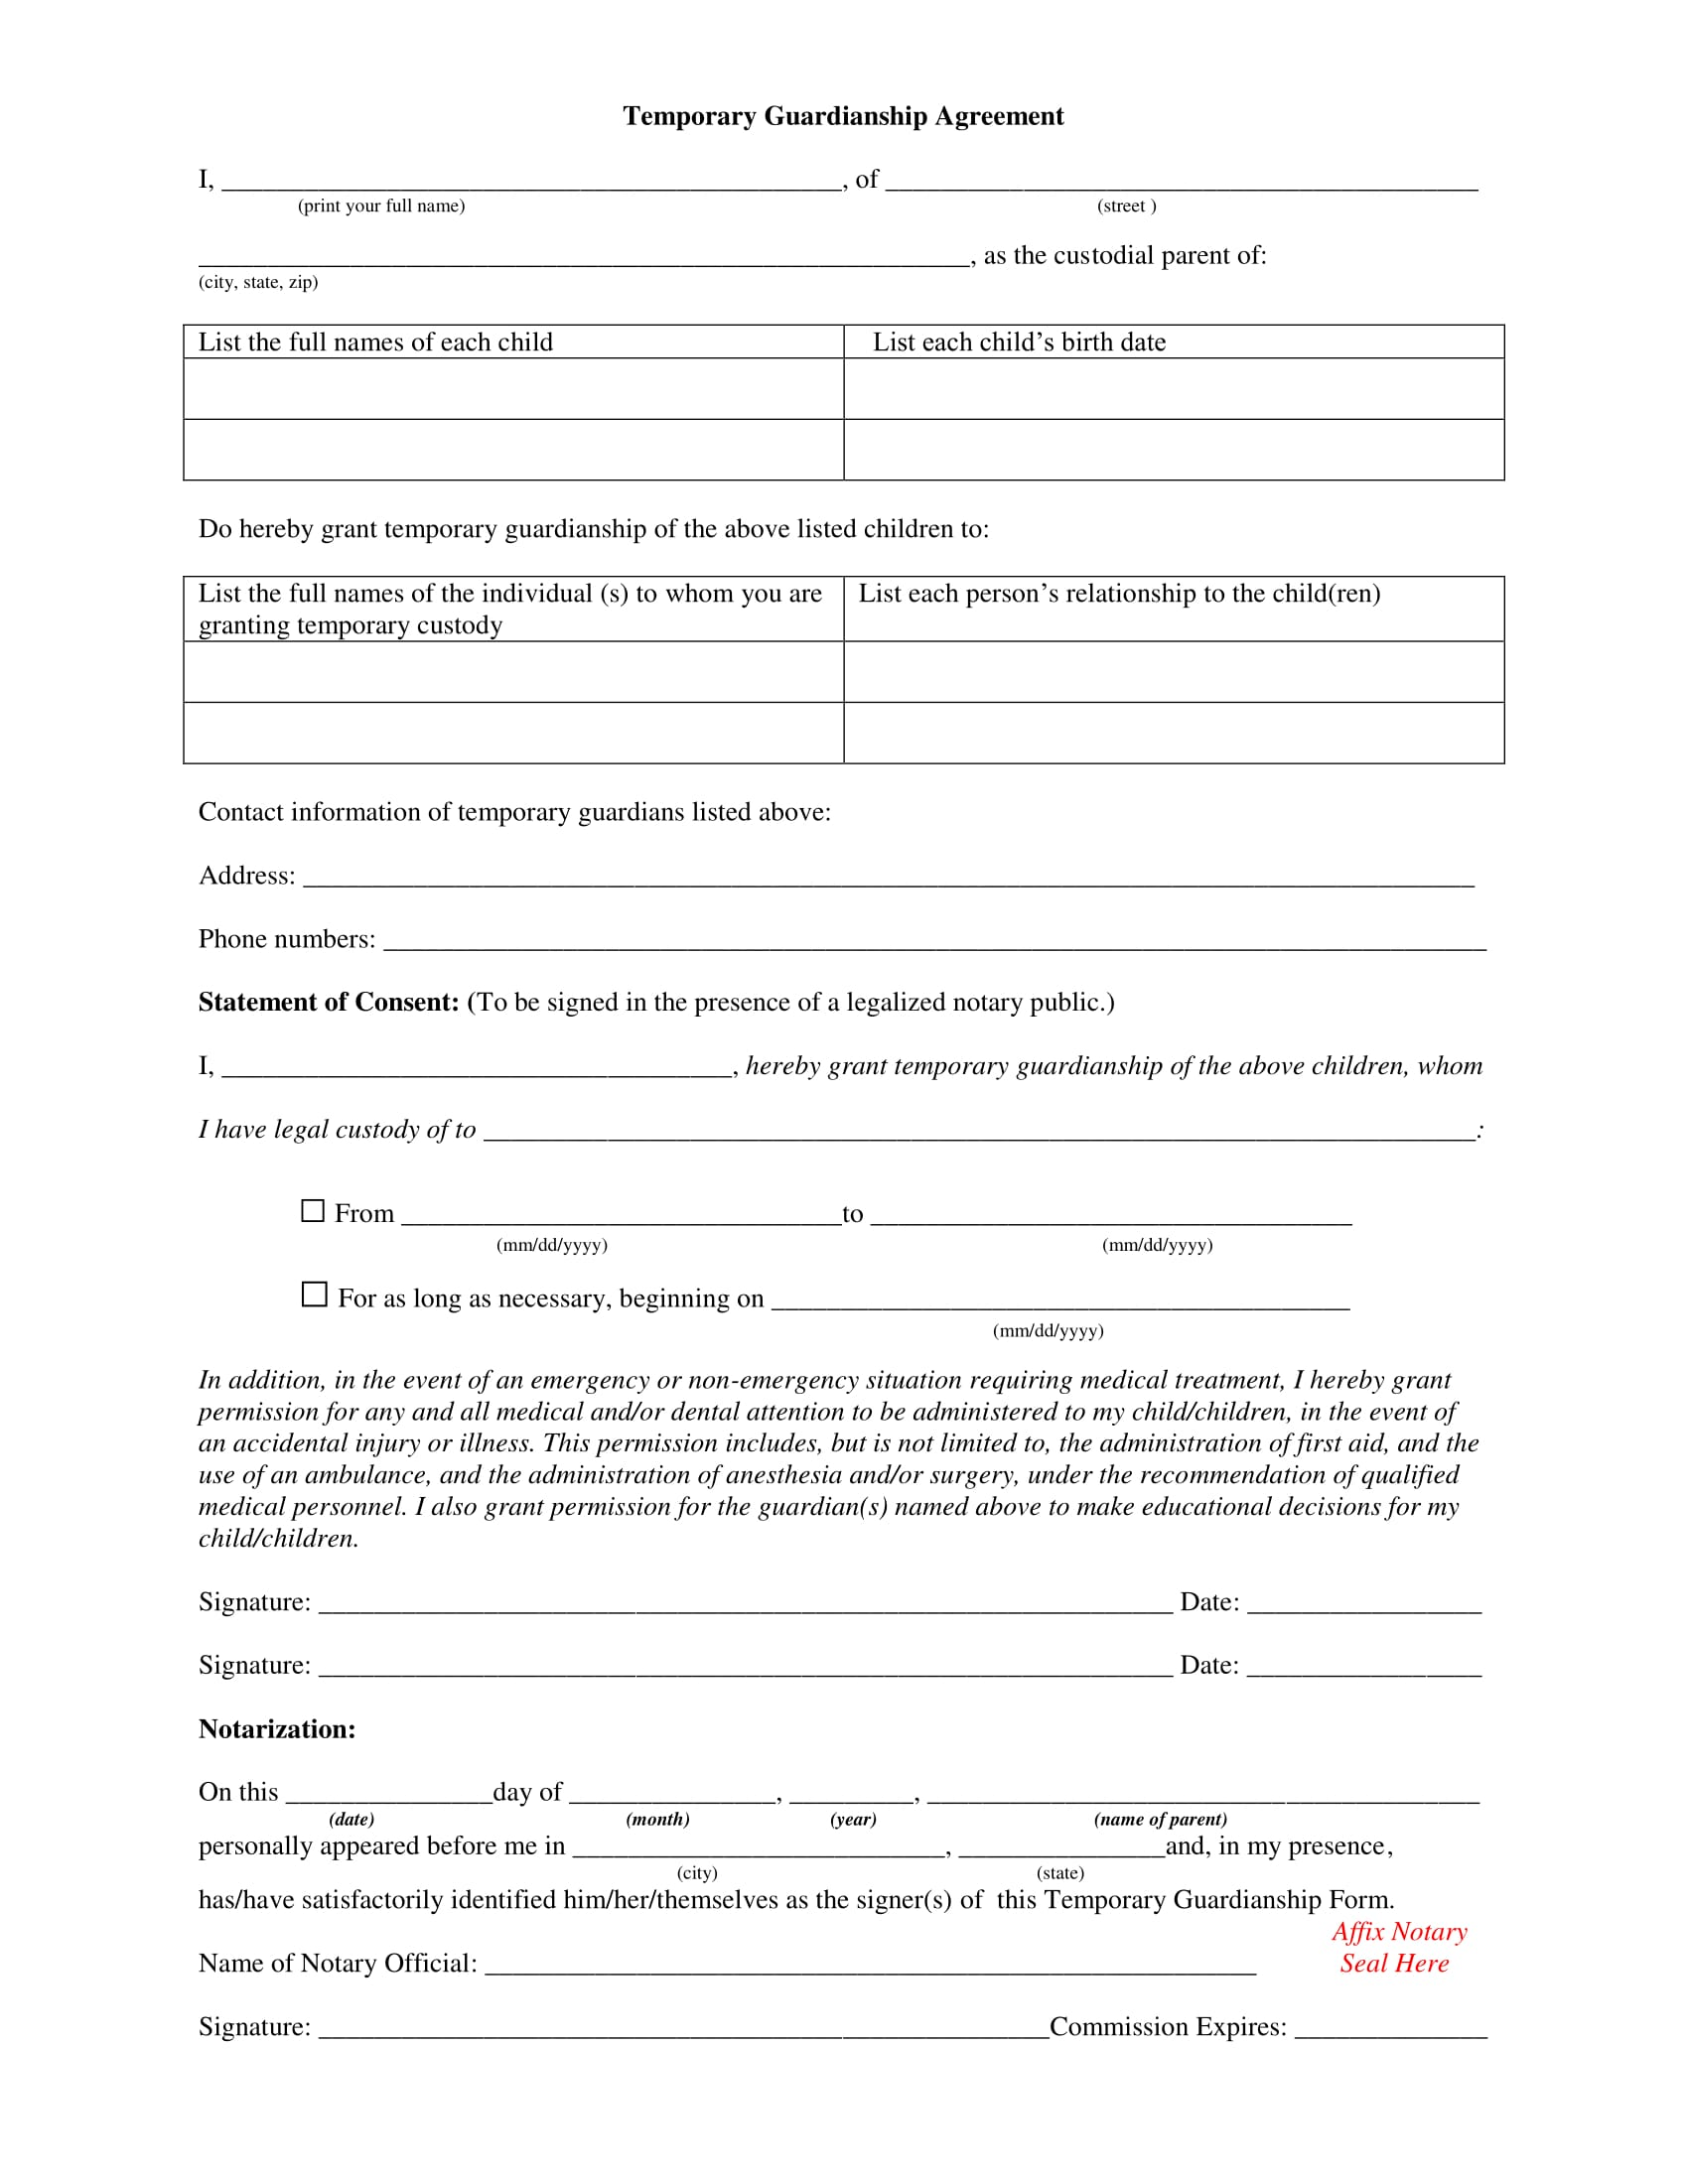 a71260b31fa252736e821884524306c9 Oci Card Application Sample Form Usa on application form for minor declaration, registration form, card signature, application signature,